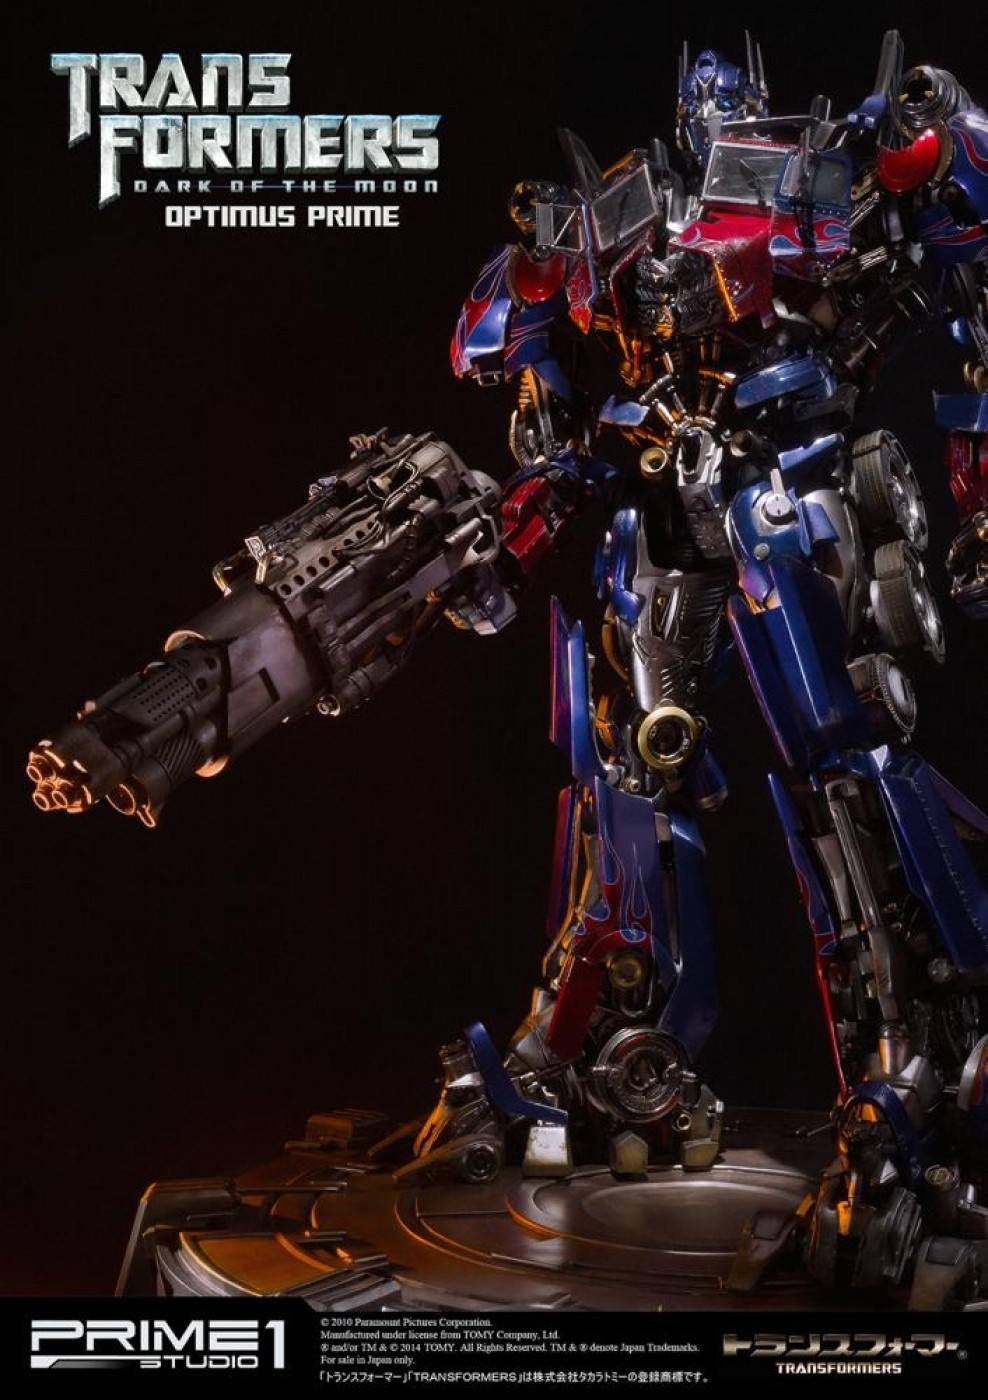 museum masterline transformers: dark of the moon optimus prime